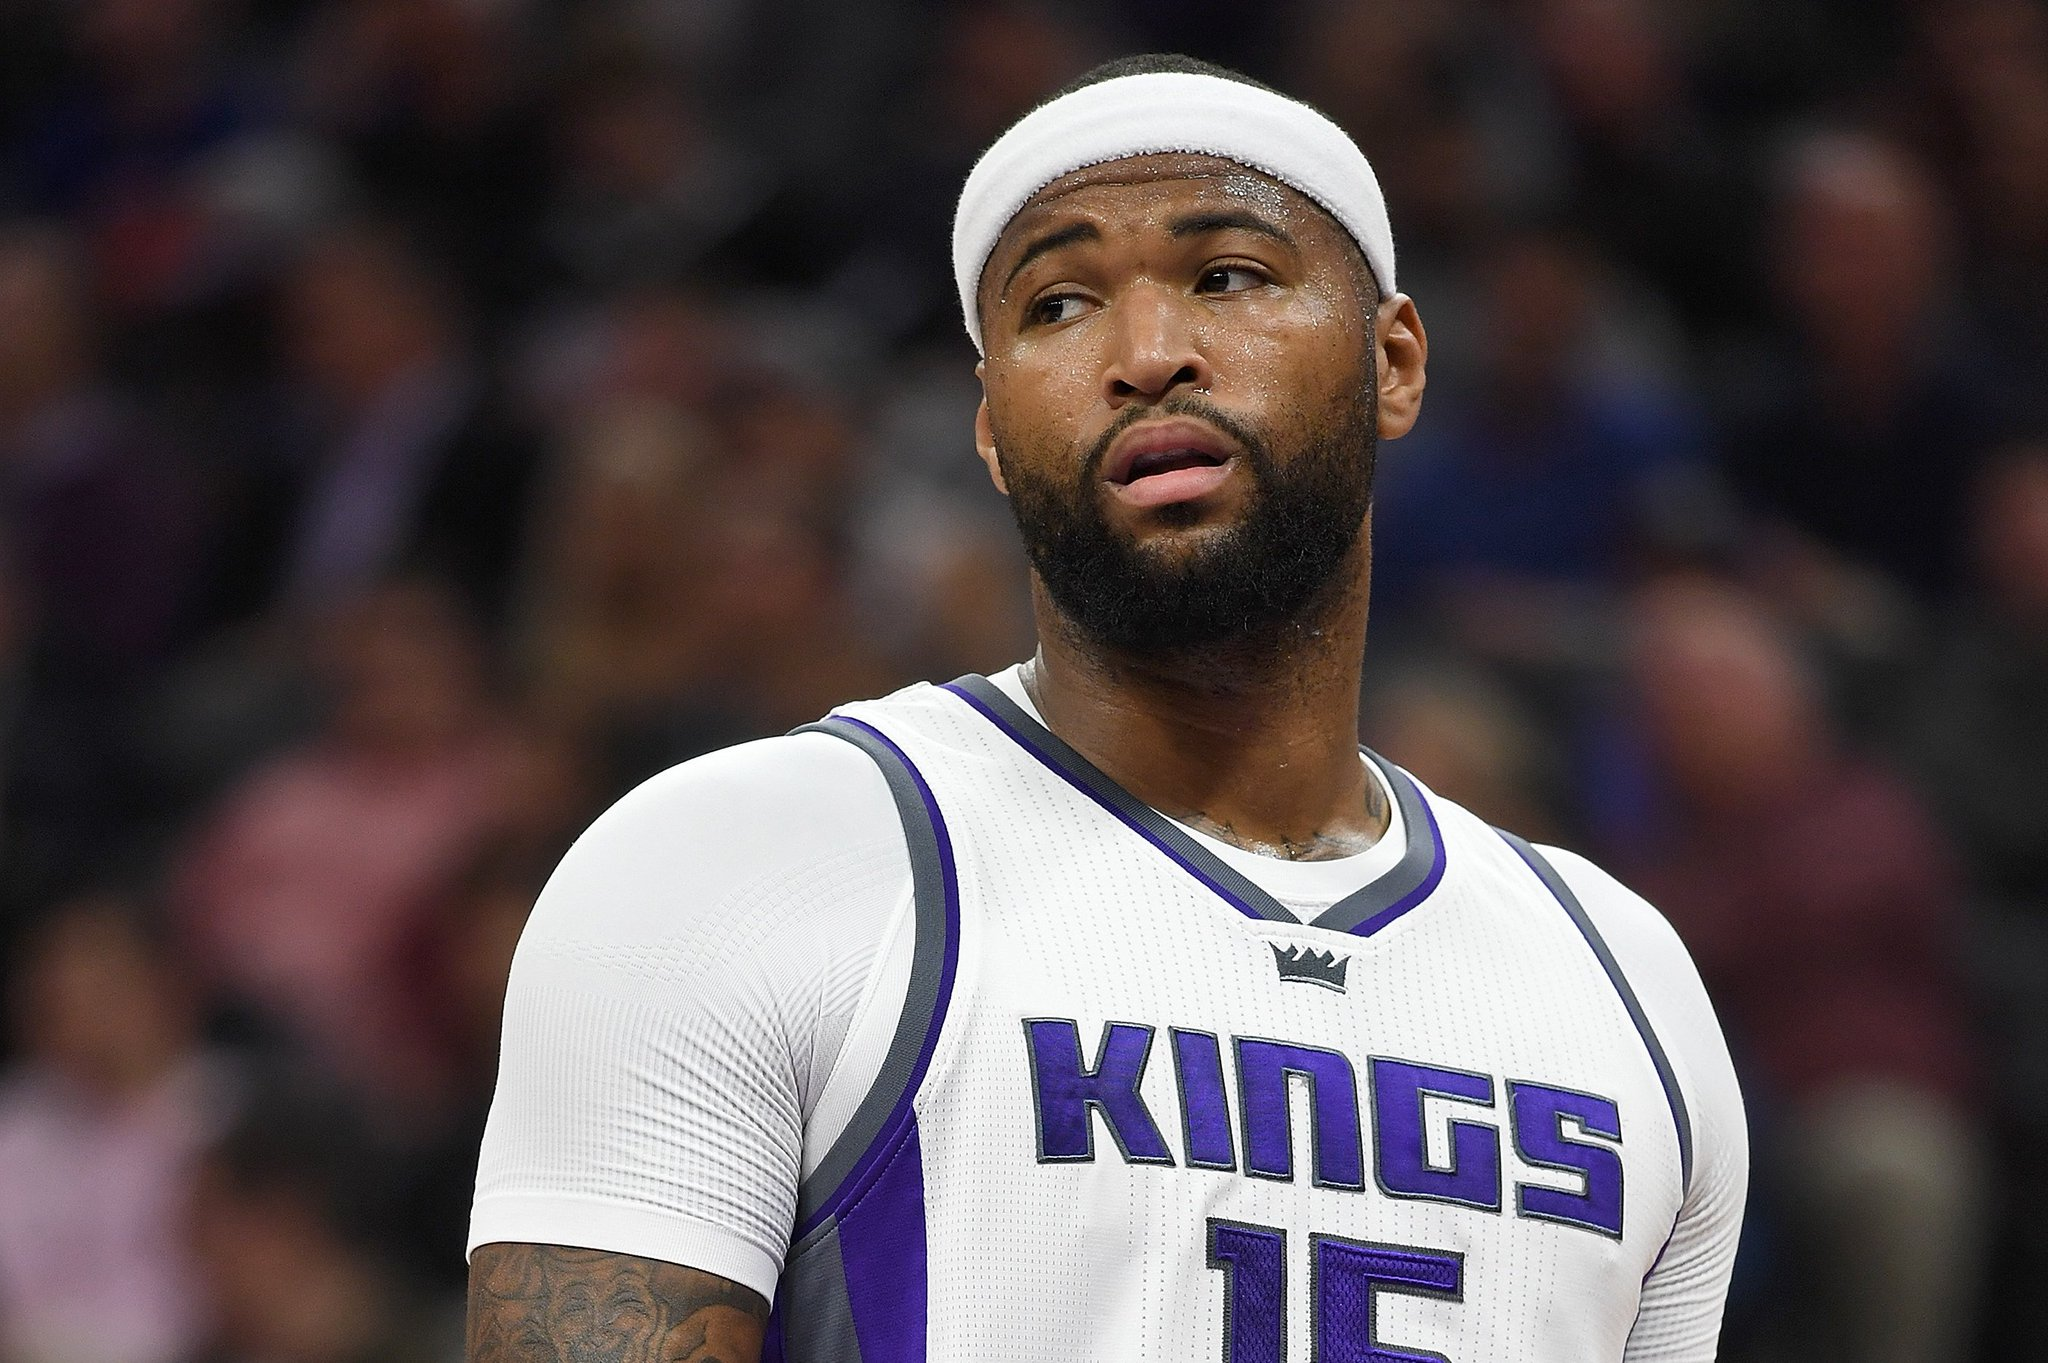 Cancel your flight Boogie, you're staying in New Orleans  Full Trade Details: https://t.co/GdqaMCkYXw https://t.co/5Lkbt6WVYF